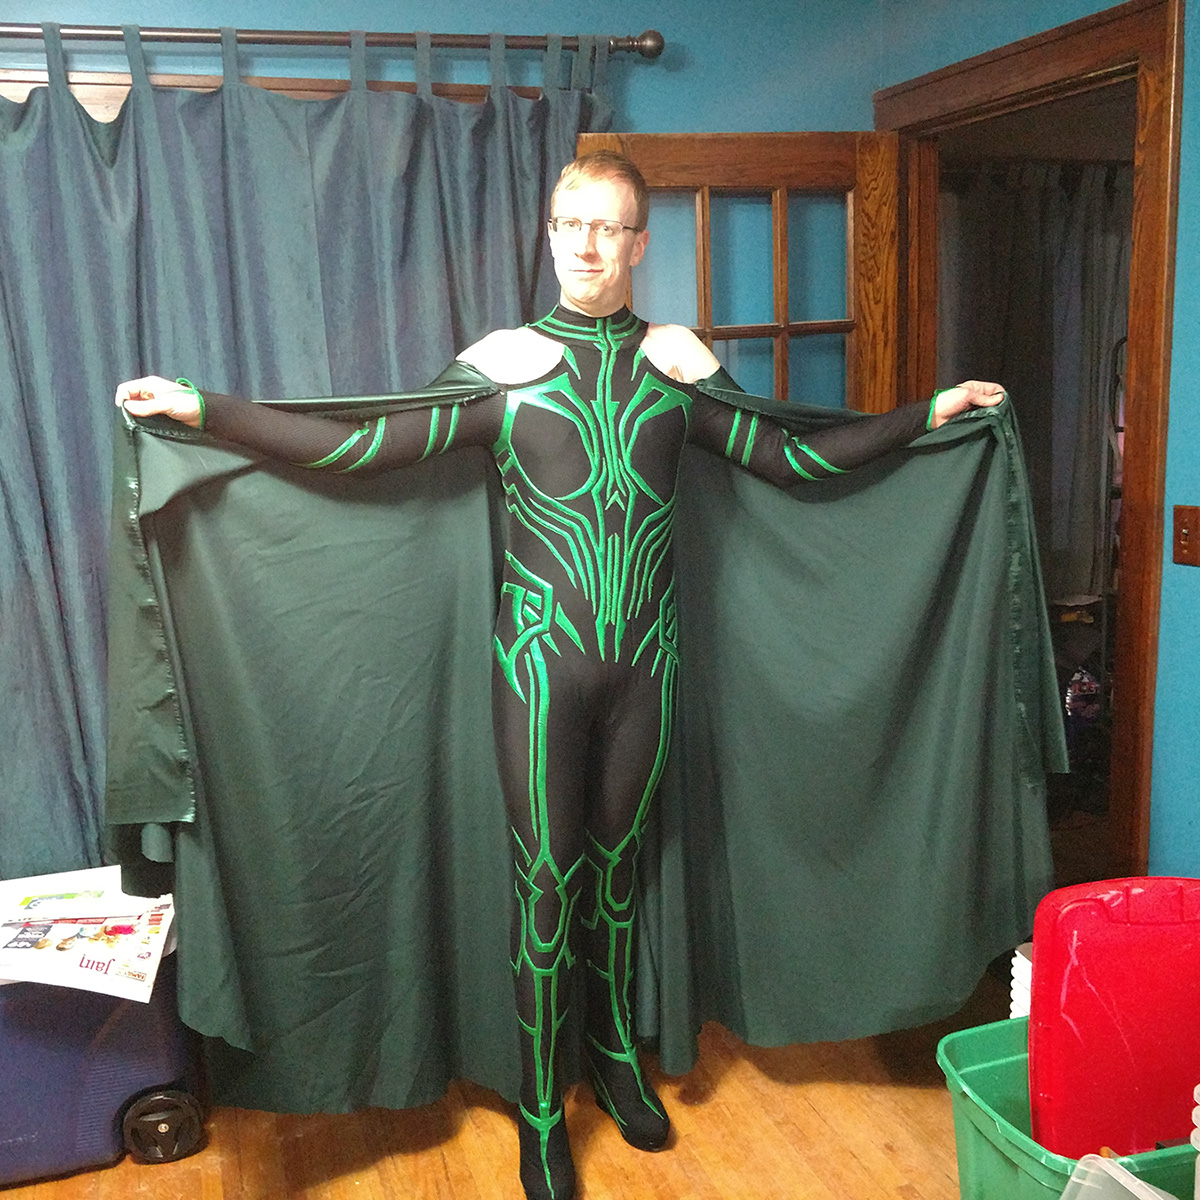 A front view of a blonde man in glasses, wearing an MCU Hela cosplay.  His arms are extended out to the side, holding up the cape ends to show the fullness.